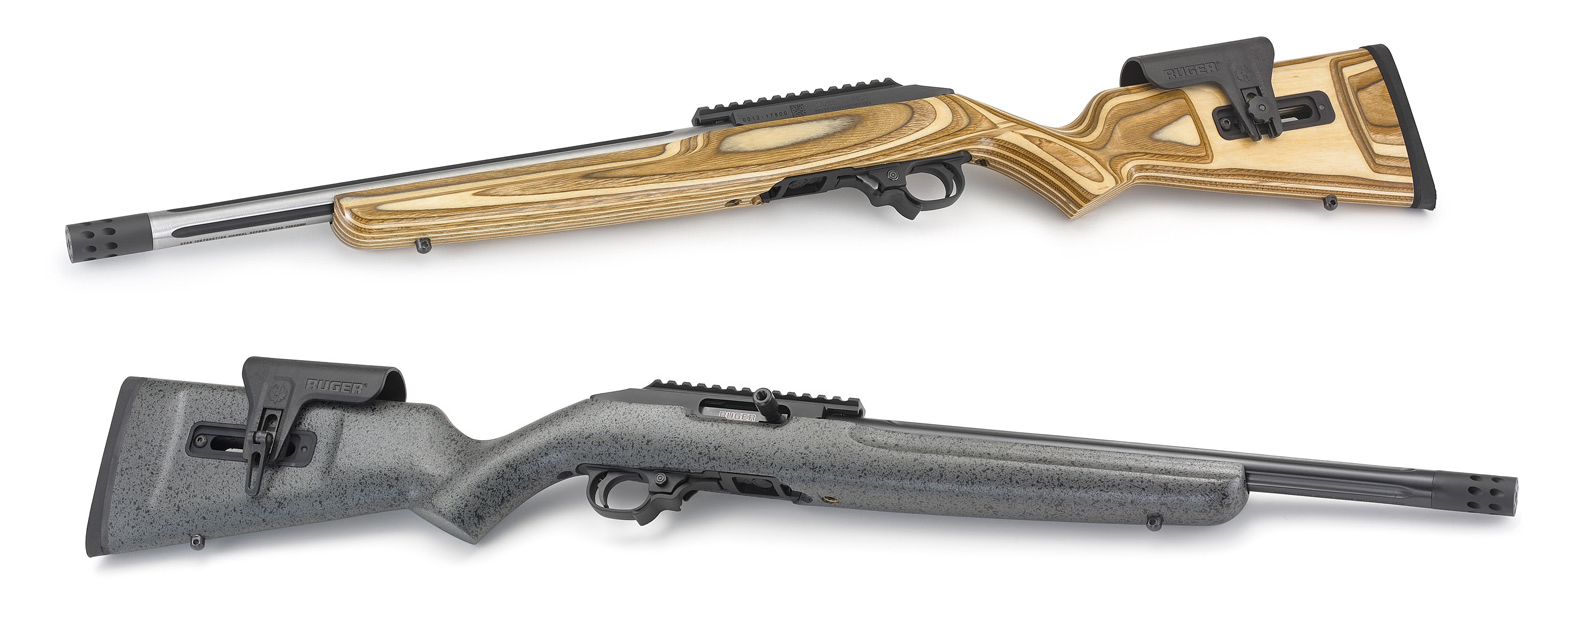 RUGER 10/22 COMPETITION